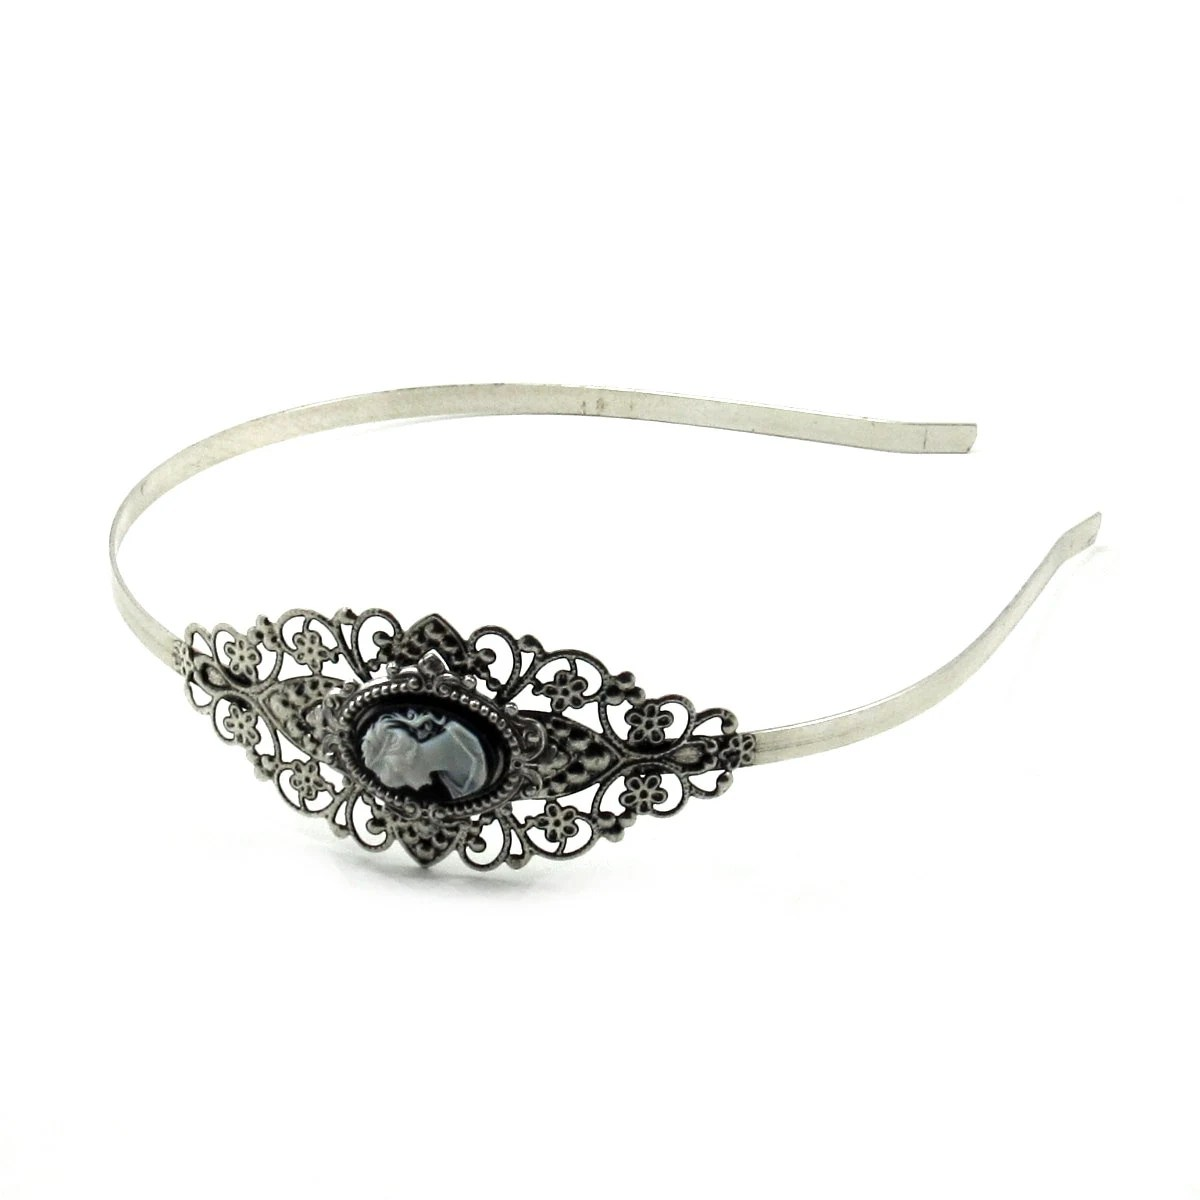 Gothic Lolita Neo Victorian Cameo Headband With White On Black